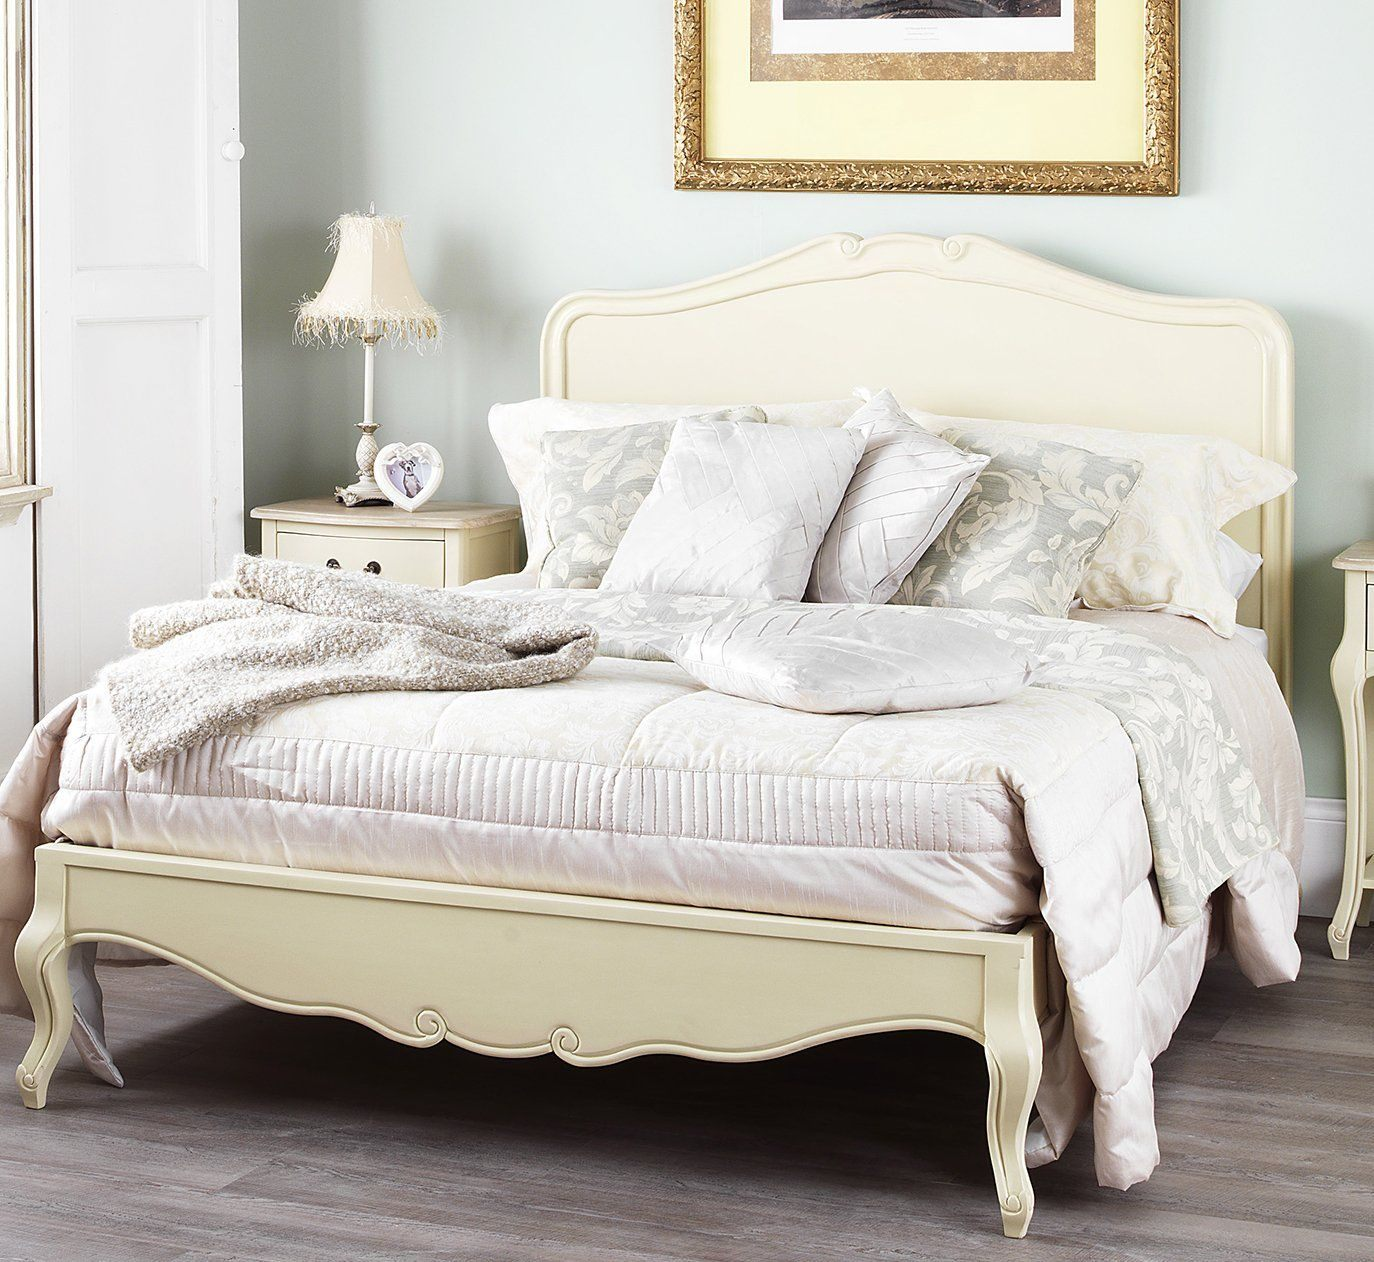 Tete De Lit Amazon Nouveau Shabby Chic Champagne 5ft King Bed with Wooden Headboard Amazon